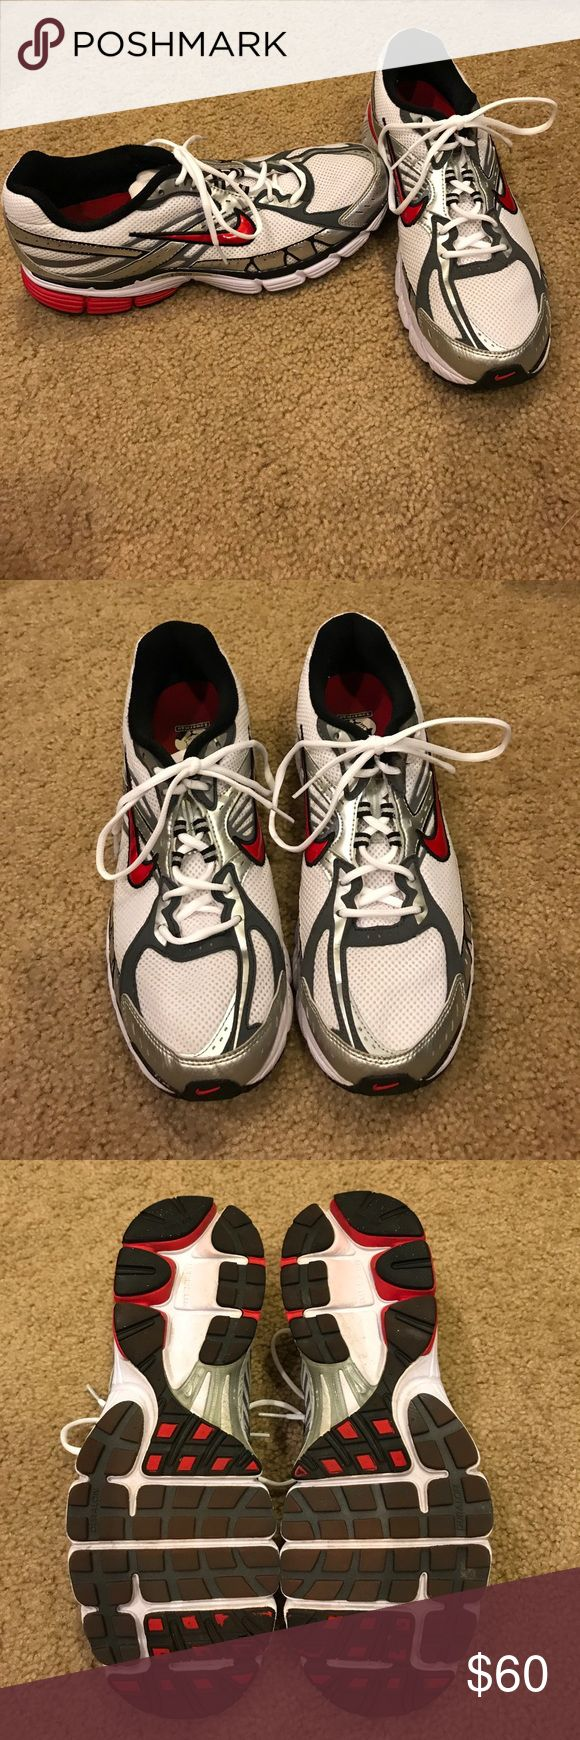 Men's Nike+ Zoom Structure 12 Triax sneakers Men's Nike plus compatible Zoom Structure 12 Triax sneakers in like new condition. Worn maybe 3 times. Size 12 men's. Black, Red & Gray Nike Shoes Sneakers